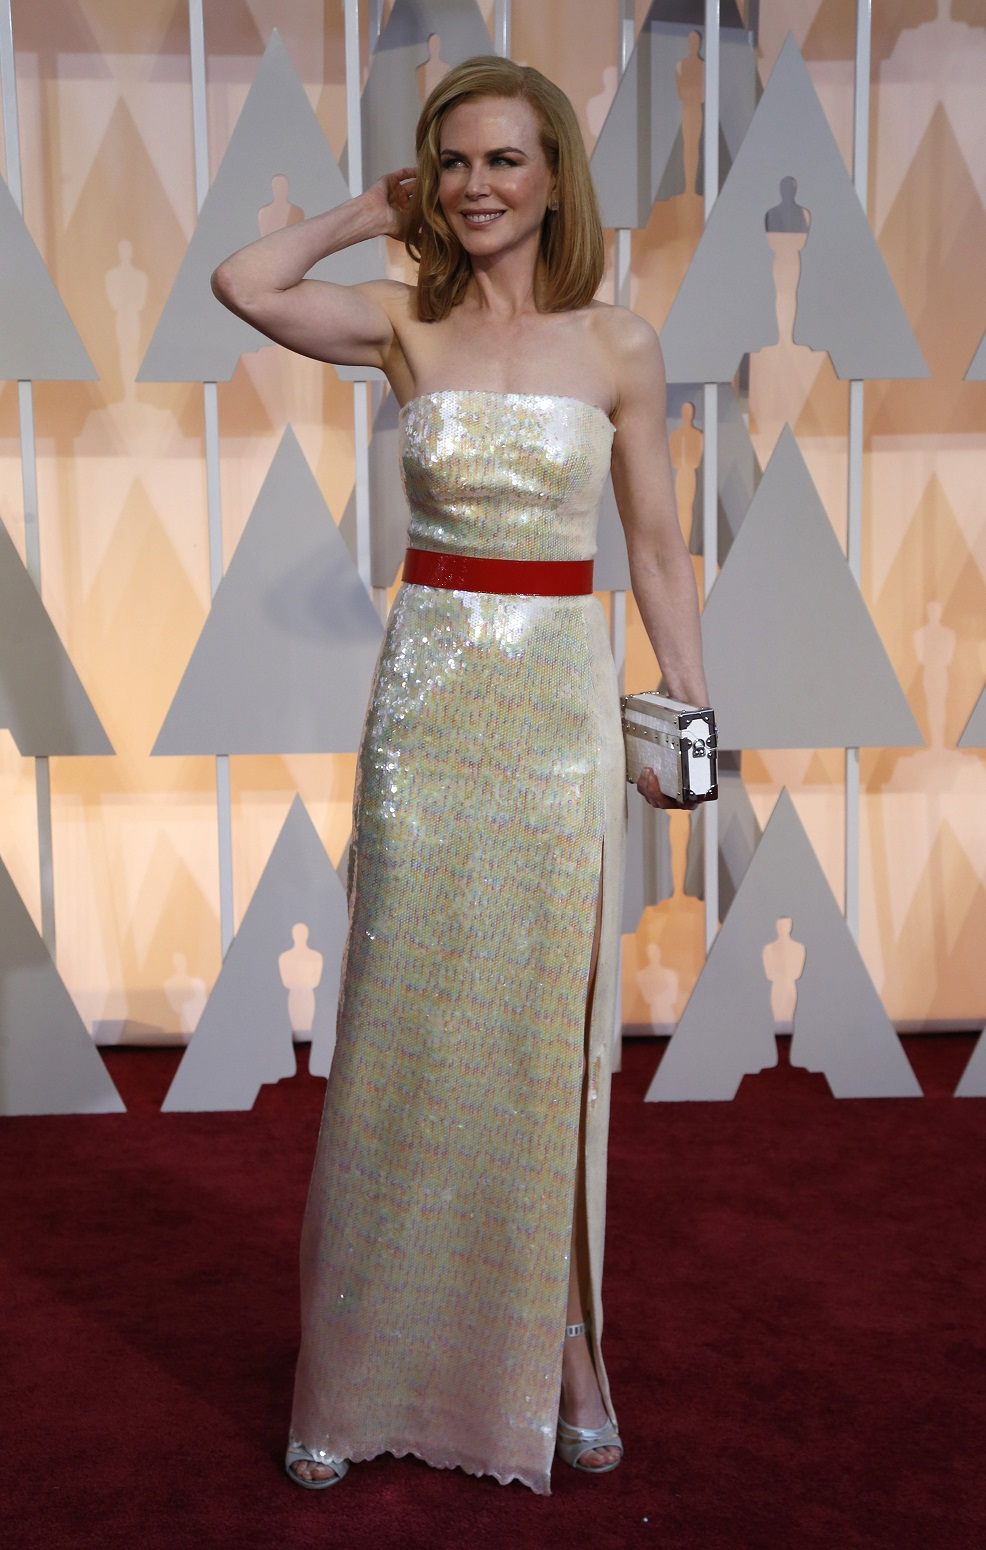 Actress Nicole Kidman arrives at the 87th Academy Awards in Hollywood